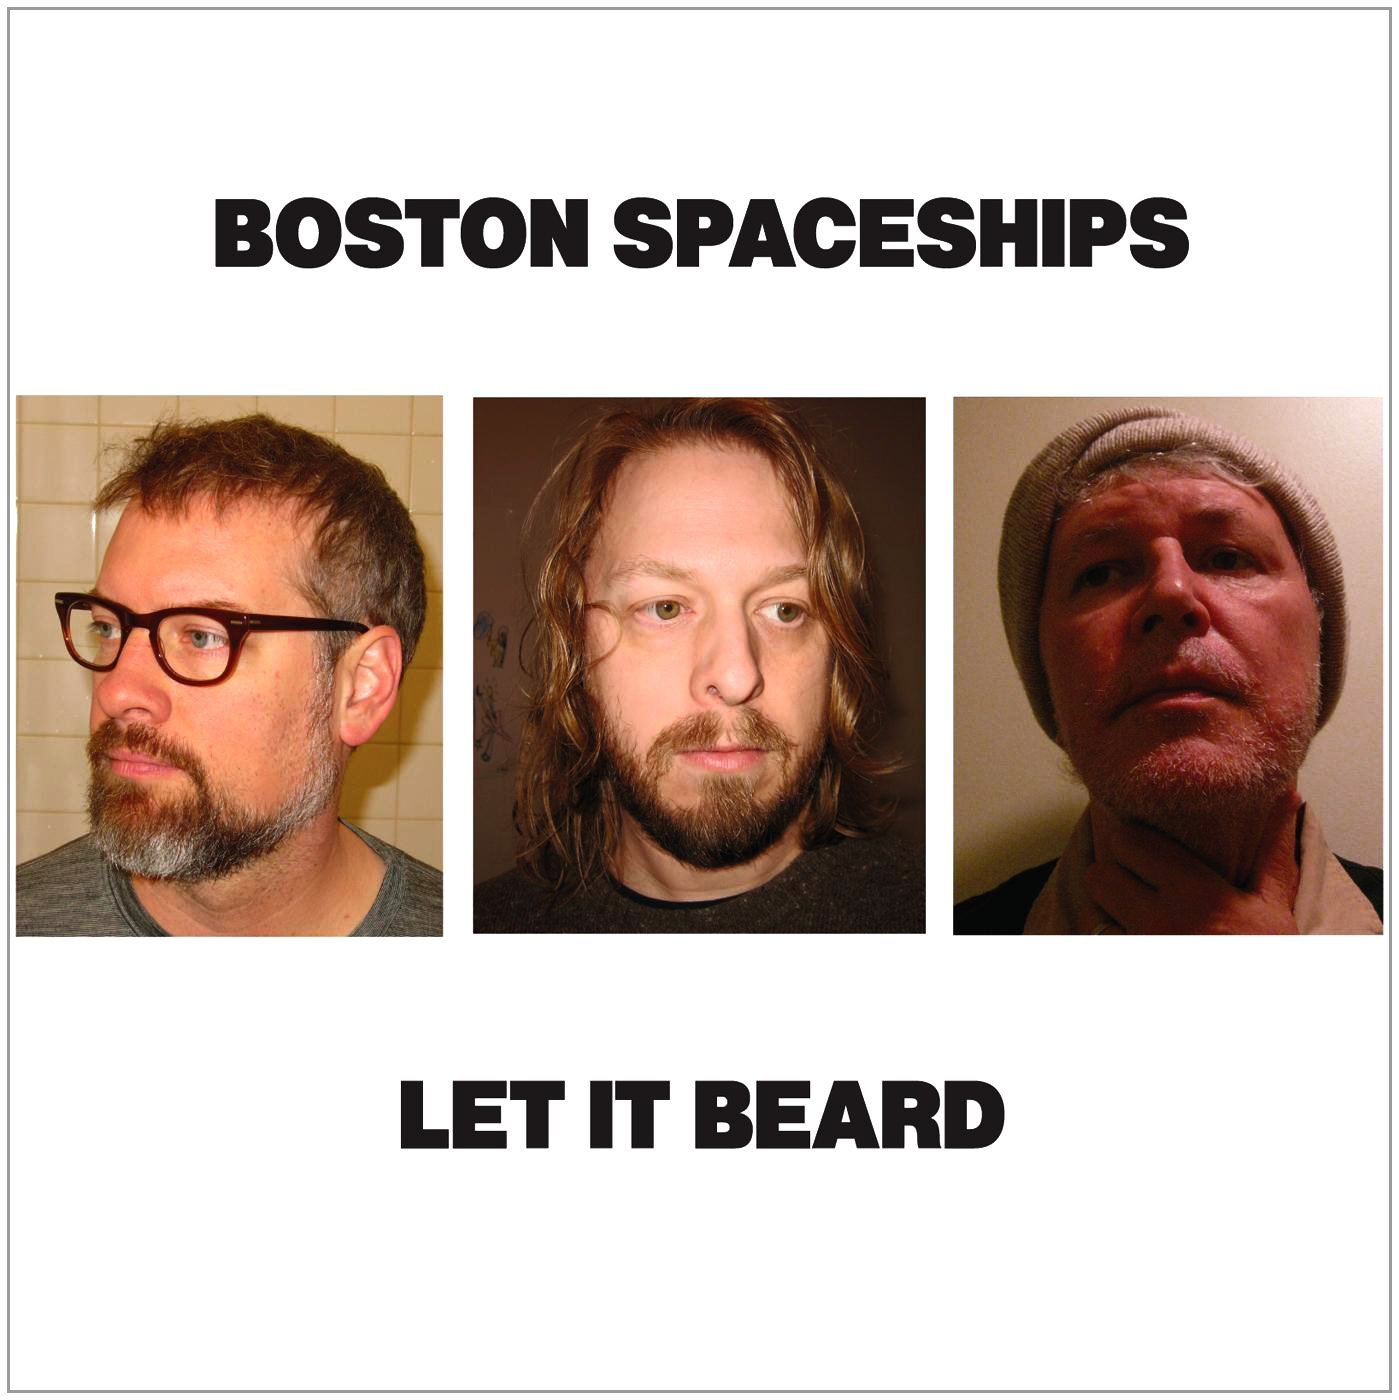 Boston Spaceships, Let It Beard